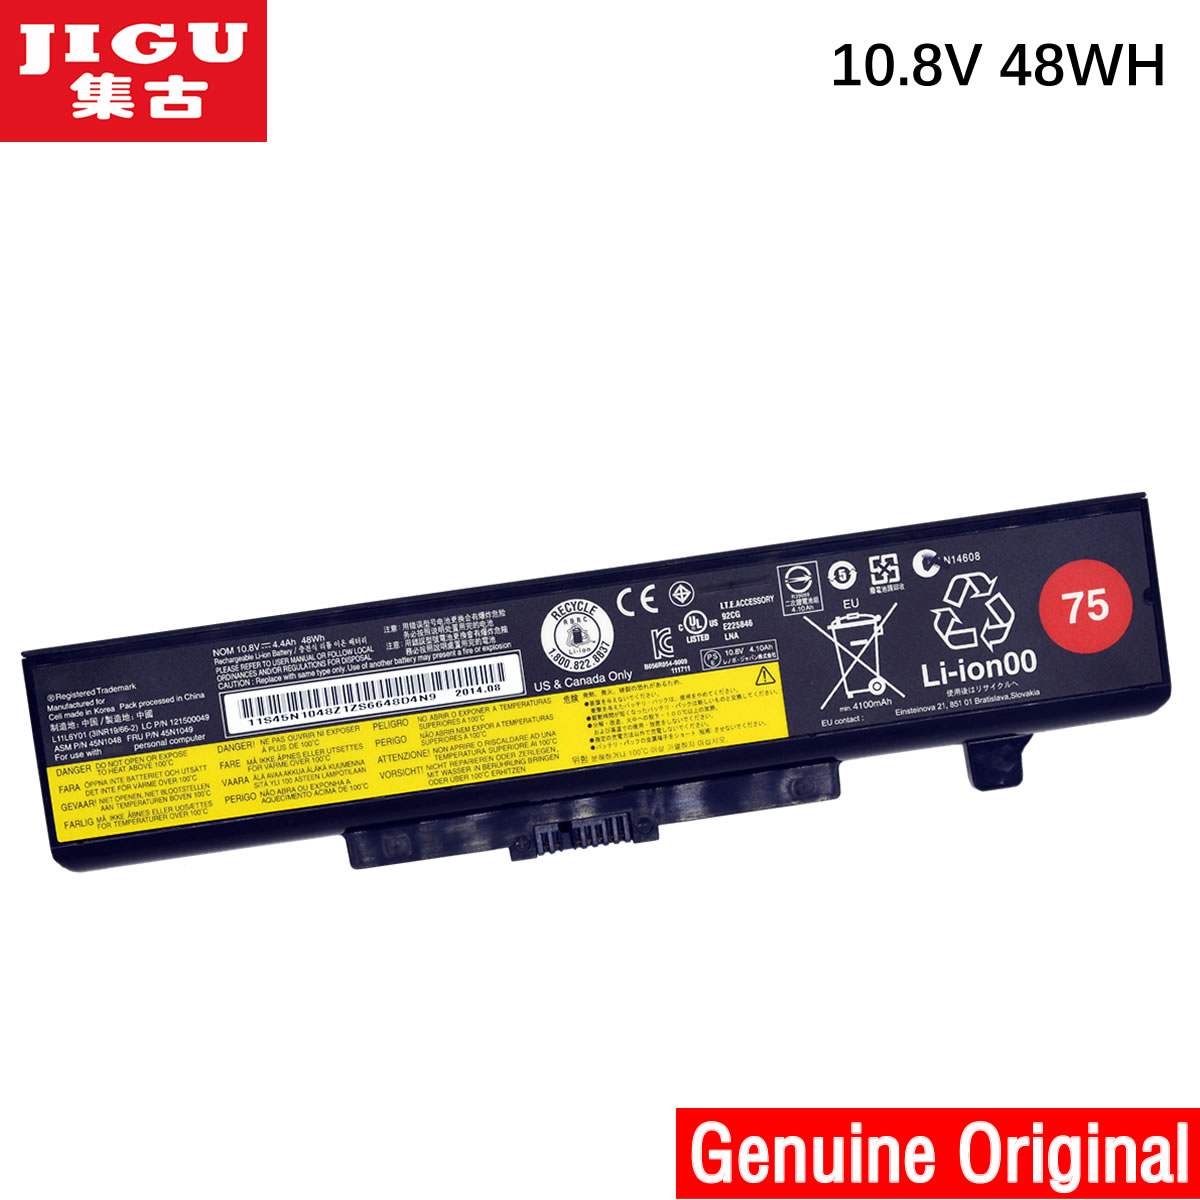 JIGU Original laptop Battery For Lenovo V580 V580C Y480 Y480P Y485 Y580 Y580A Z380 Z480 Z485 Z580 Z585 V480S V480u jigu new battery l11l6y01 l11s6y01 for lenovo y480p y580nt g485a g410 y480a y480 y580 g480 g485g z380 y480m